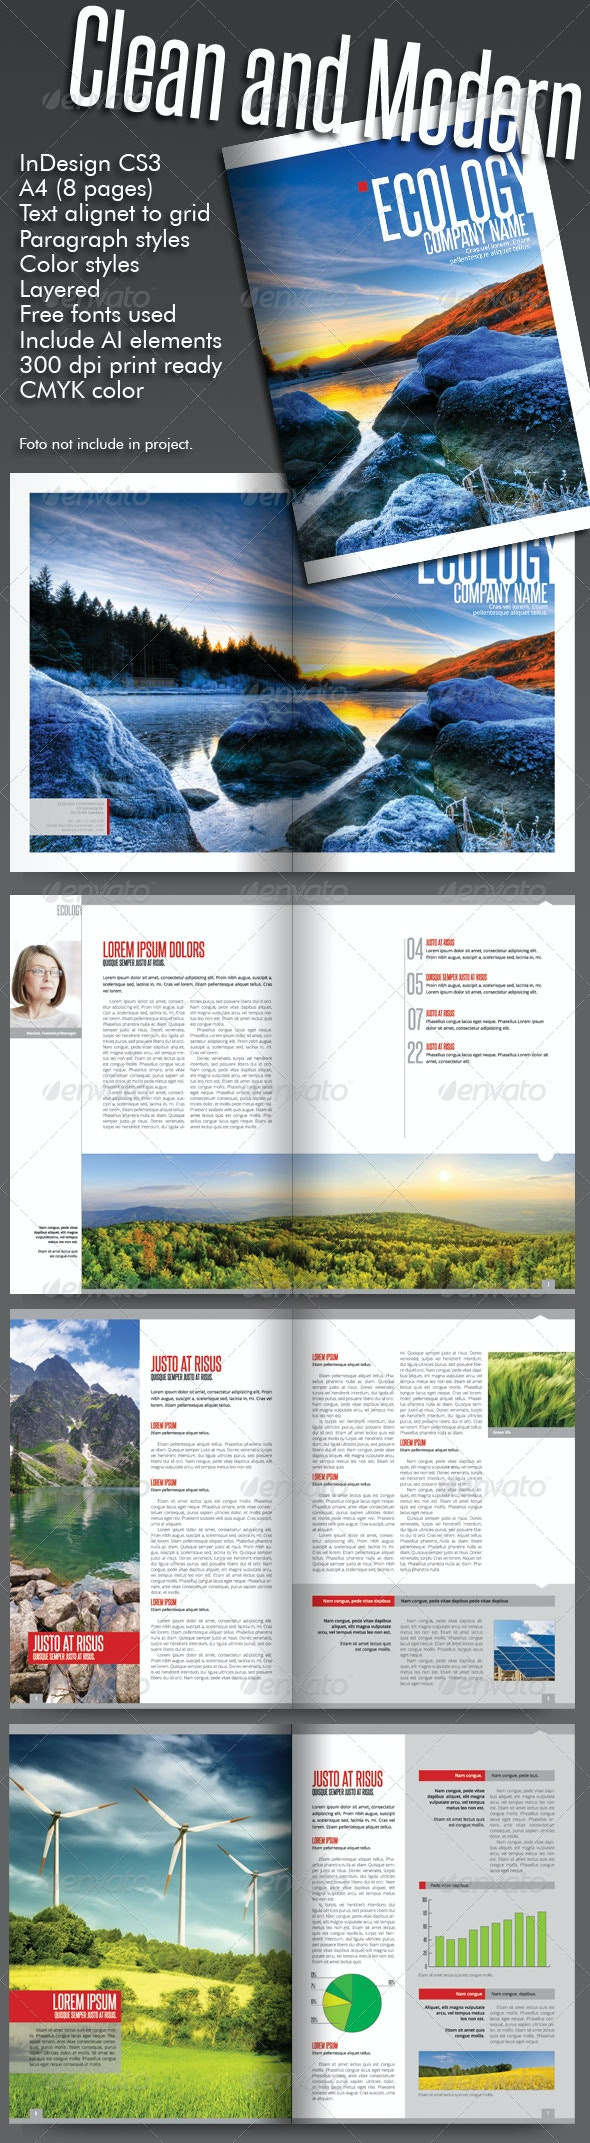 Clean and Modern Catalog (8 pages) - Brochures Print Templates